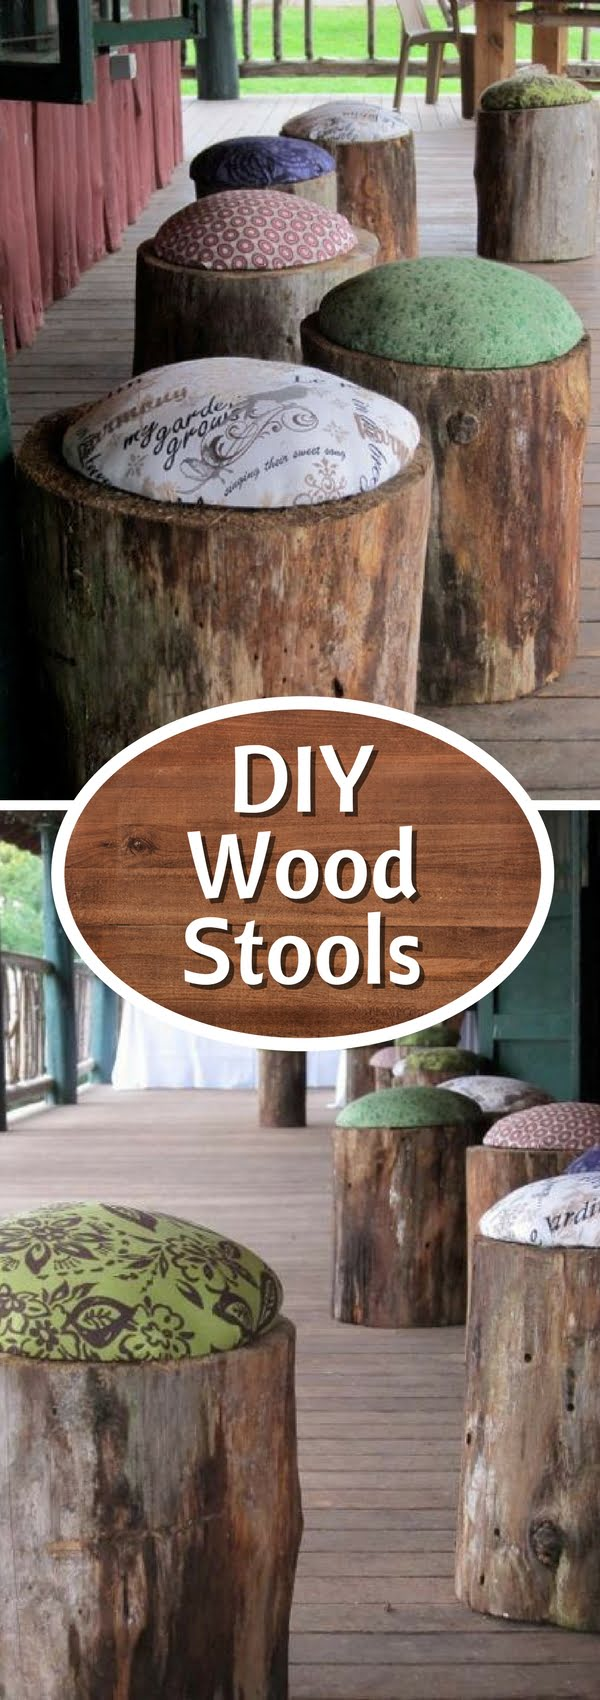 How to make DIY tree stump stools